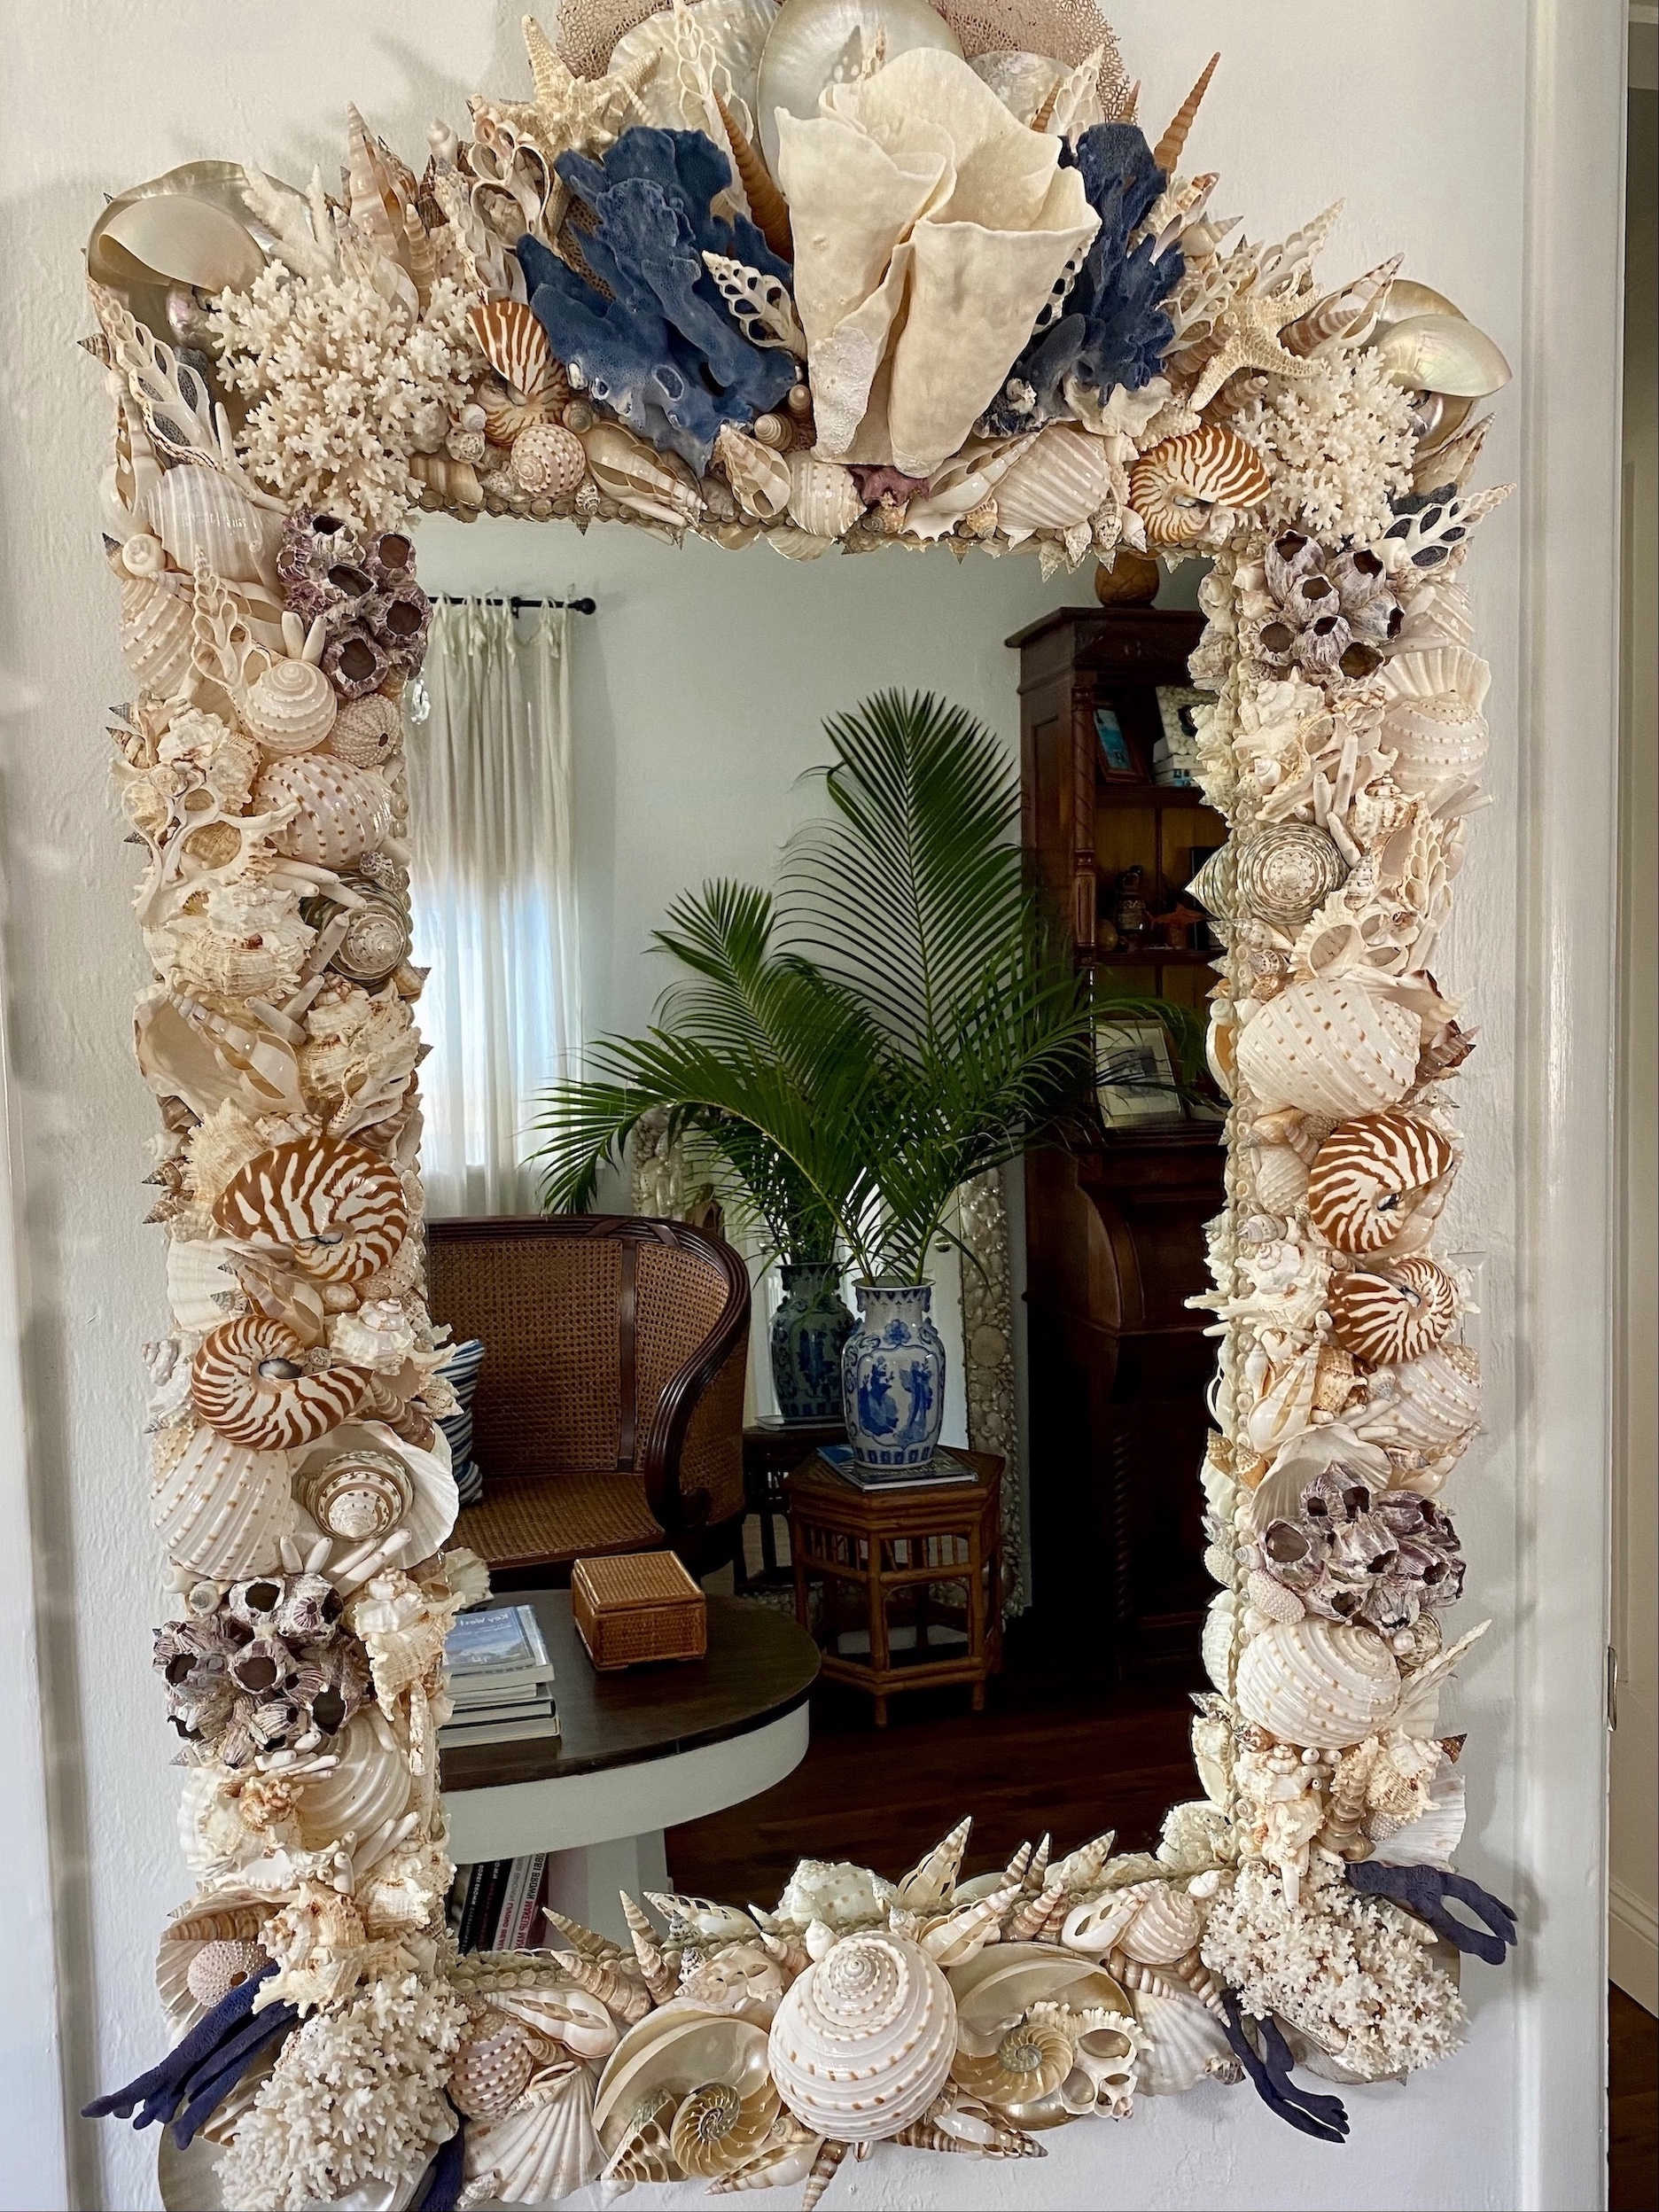 Large rectangular shell mirror featuring white, tan and purple shells with large blue coral on the top.